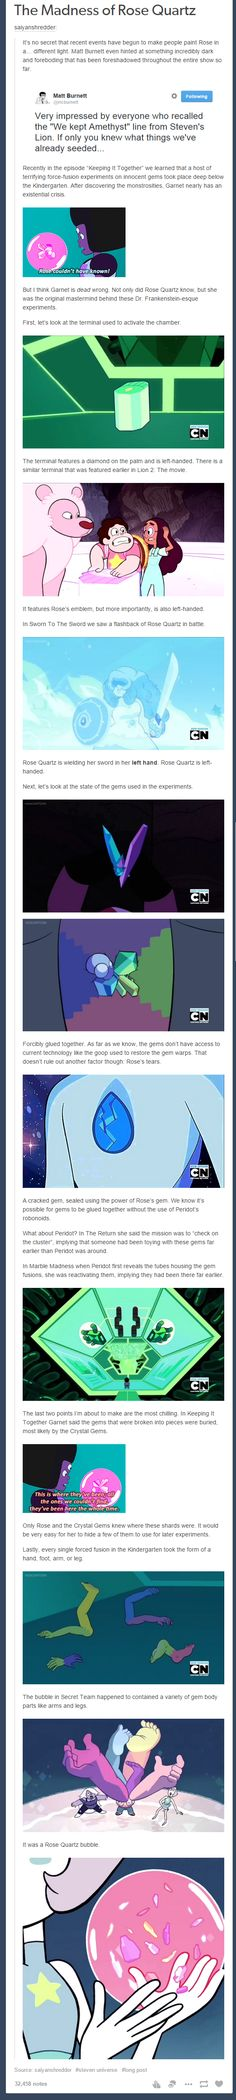 Steven Universe: Image Gallery (Sorted by Views) - Page 2 (List View) Steven Universe Theories, Fan Theories, Pokemon, Force Of Evil, Dear God, Lapidot, Gravity Falls, Cartoon Network, Adventure Time